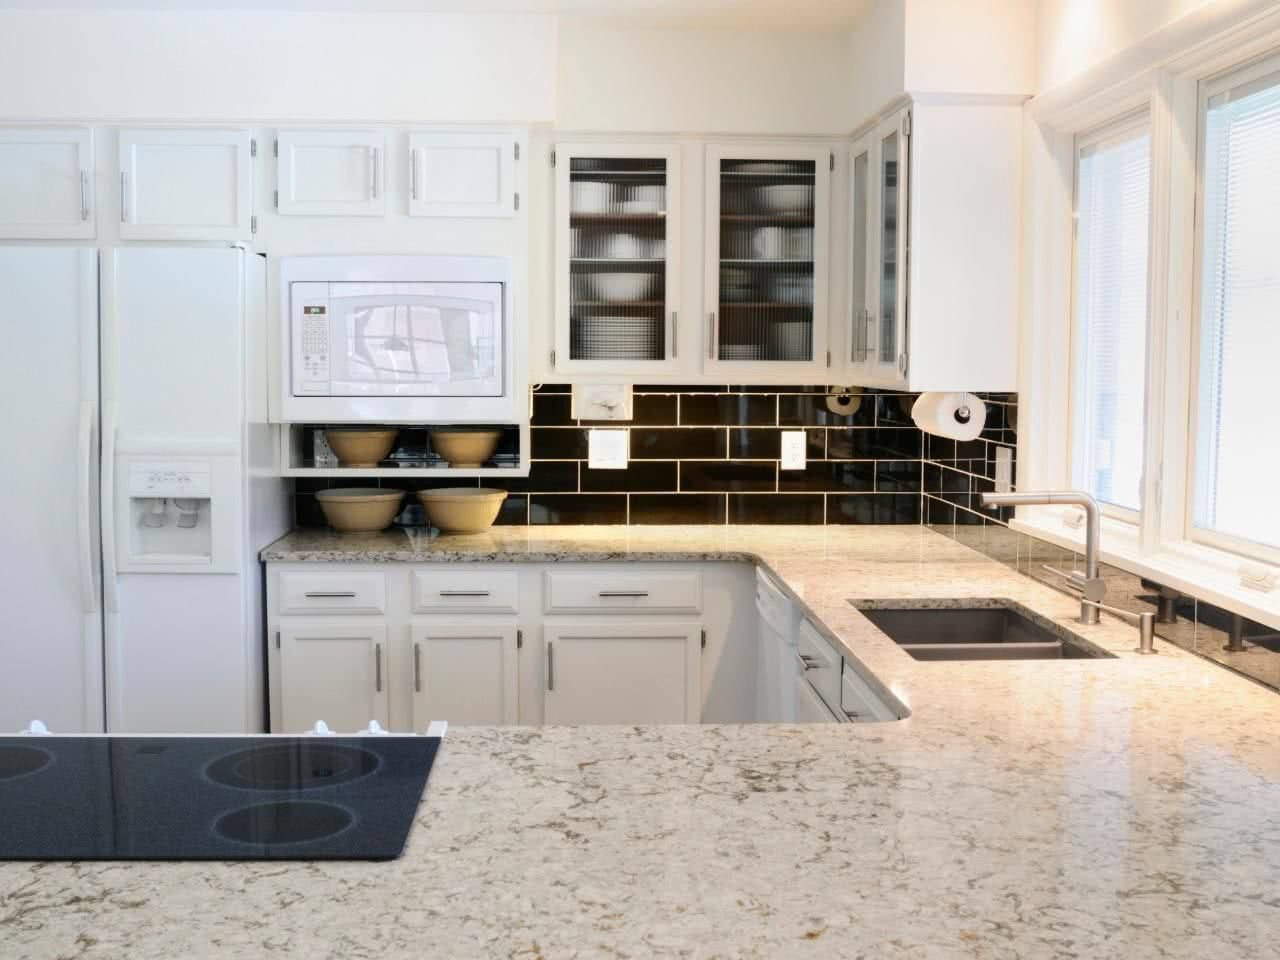 New Trends for Modern Kitchens 2021 3.2